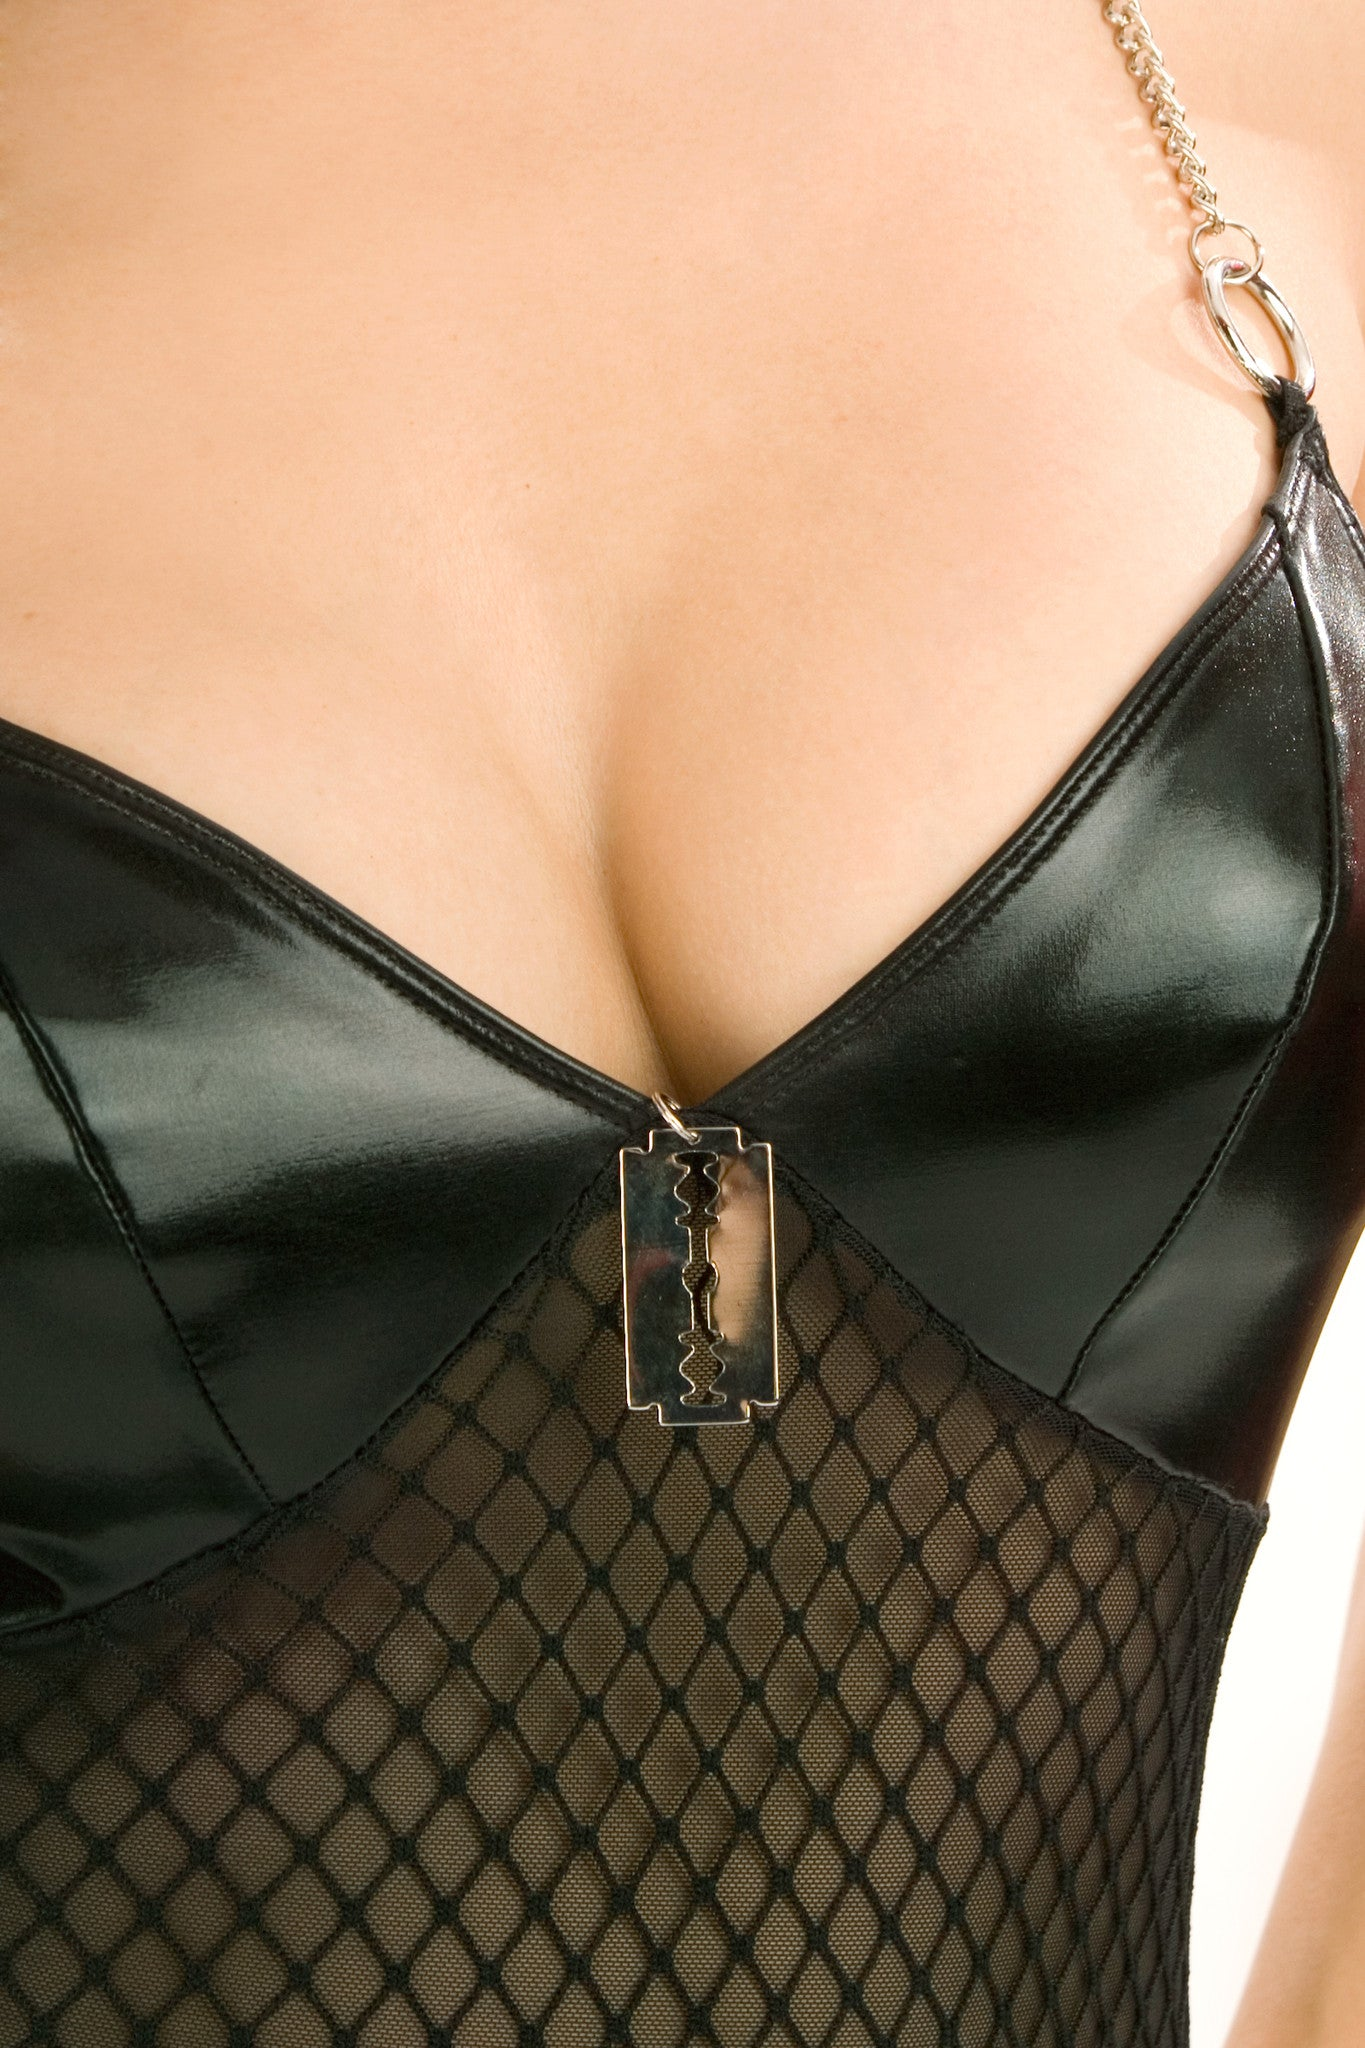 Masochist Chemise with Chain Back G-String